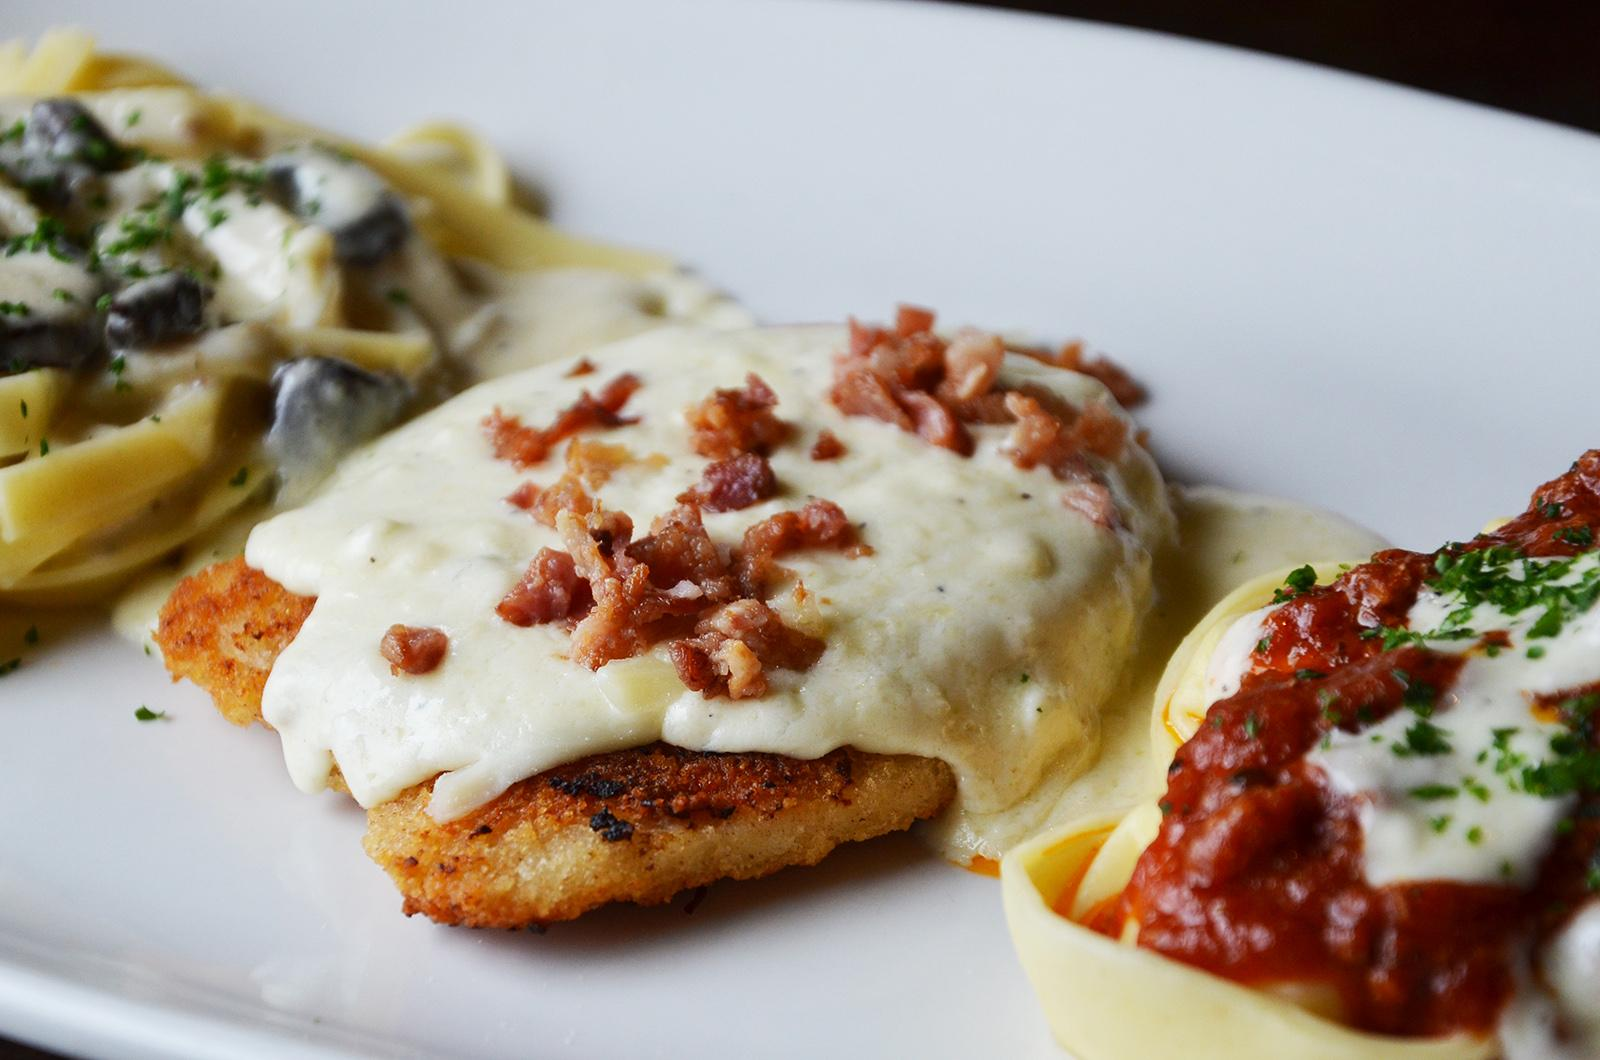 Olive Garden On Twitter Chicken Lombardy Topped With Smoked Mozzarella And Provolone Cheese